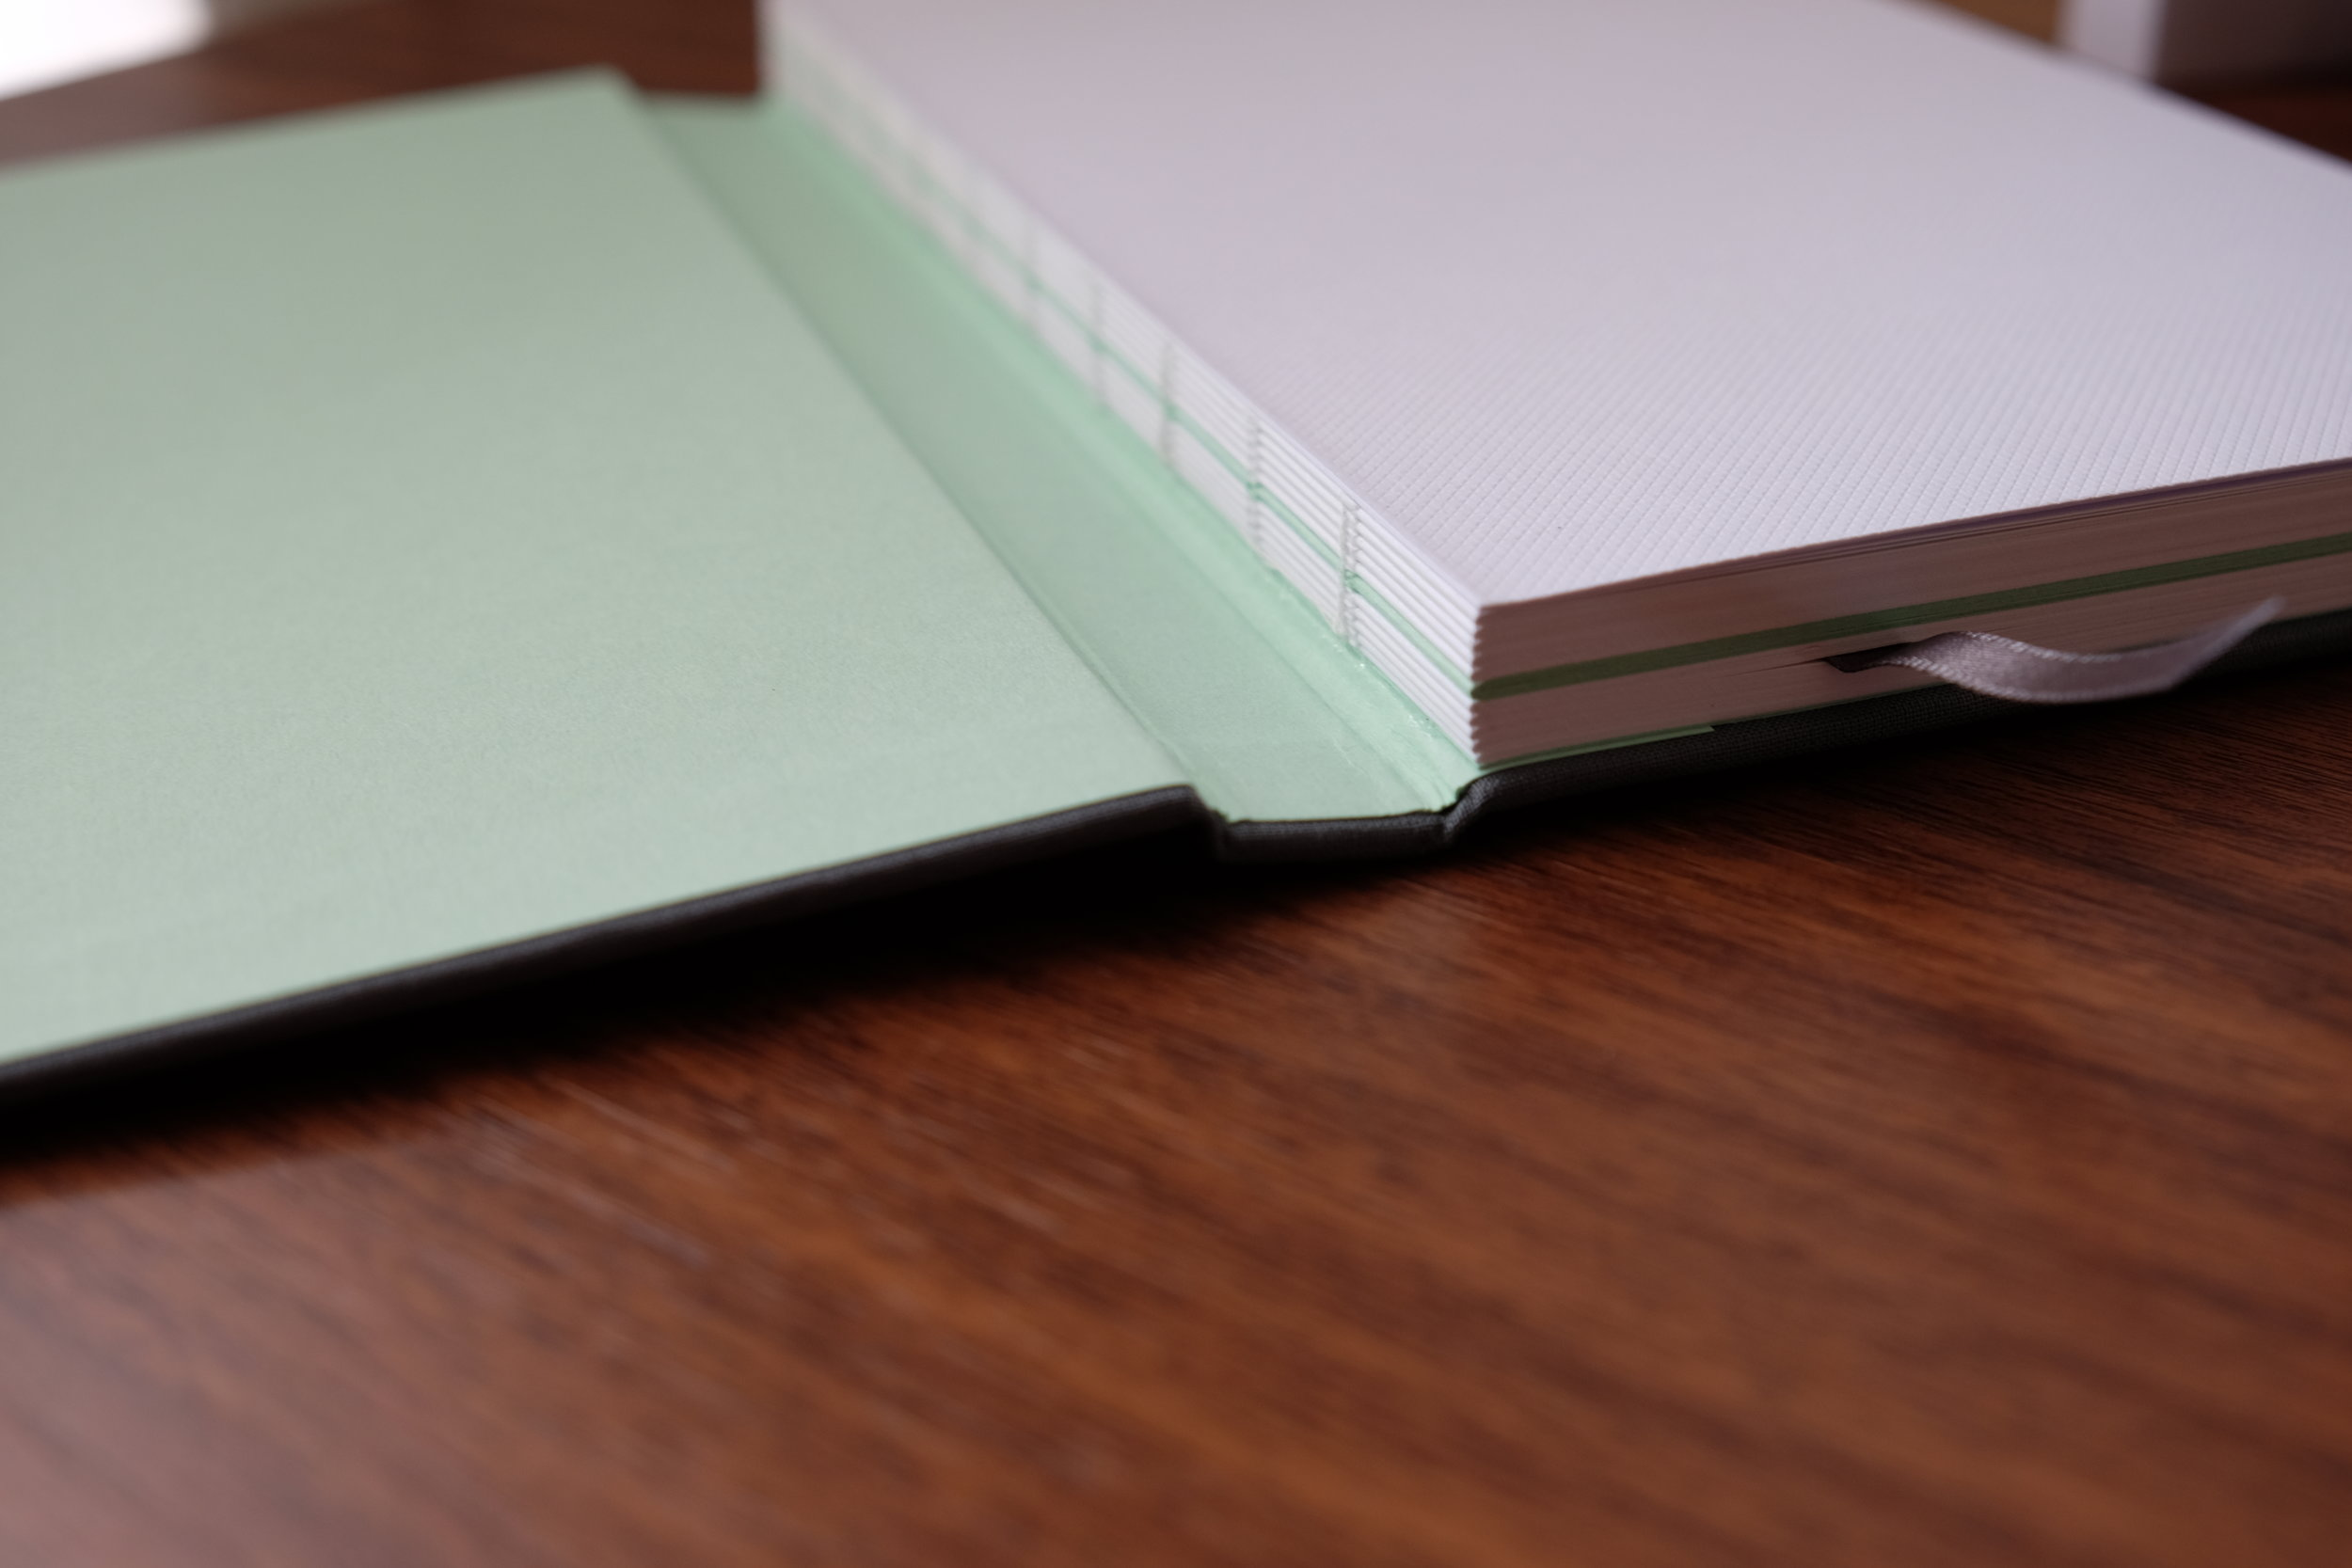 The MOO Notebook's unique binding and center seam